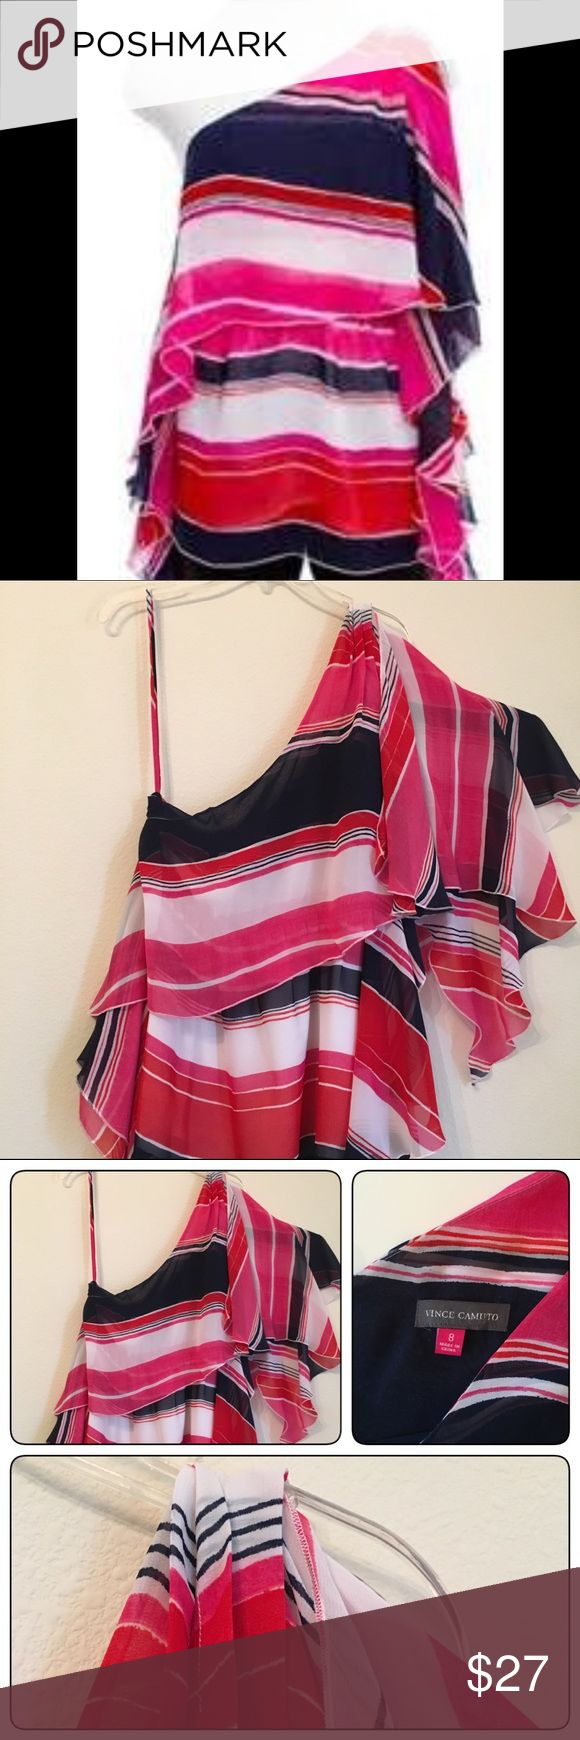 Vince Camuto Single Shoulder Butterfly Blouse Perfect for summer, this bright multi colored (pink, white, navy) flowing blouse has a single strap and one full shoulder.  Features shark bite hemline. 100% polyester lining  and cover. Size 8 Vince Camuto Tops Blouses